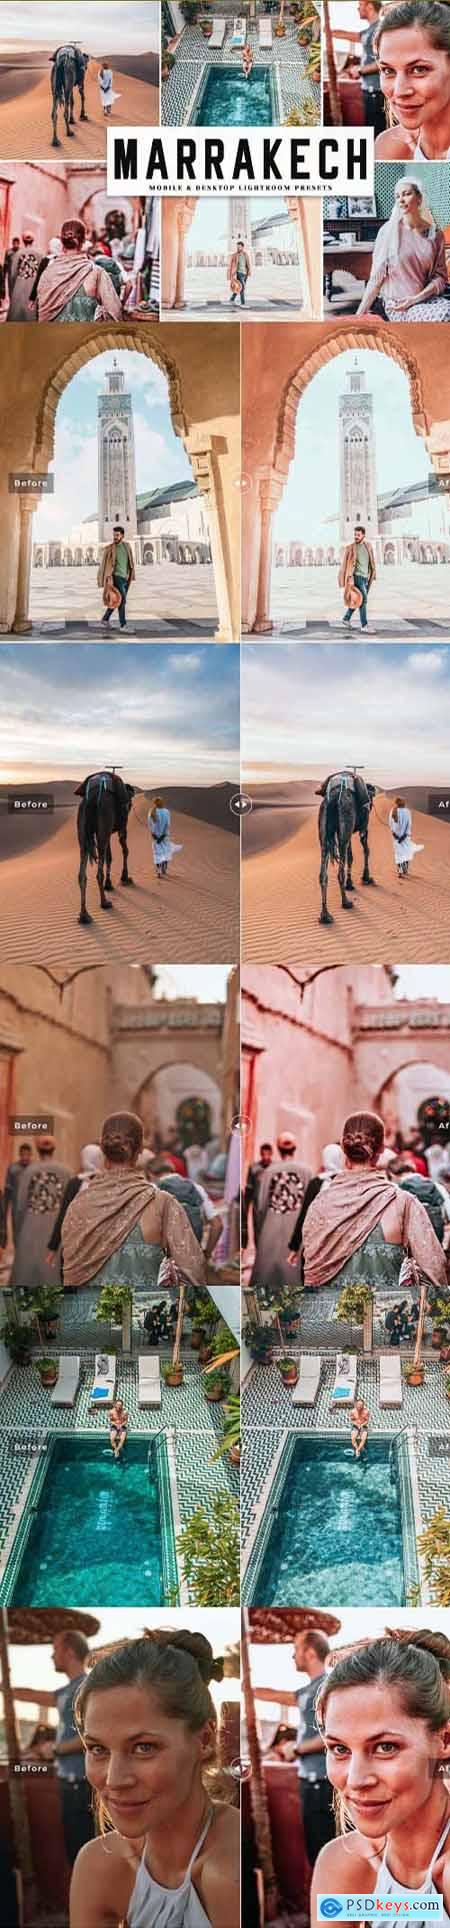 Marrakech Mobile & Desktop Lightroom Presets